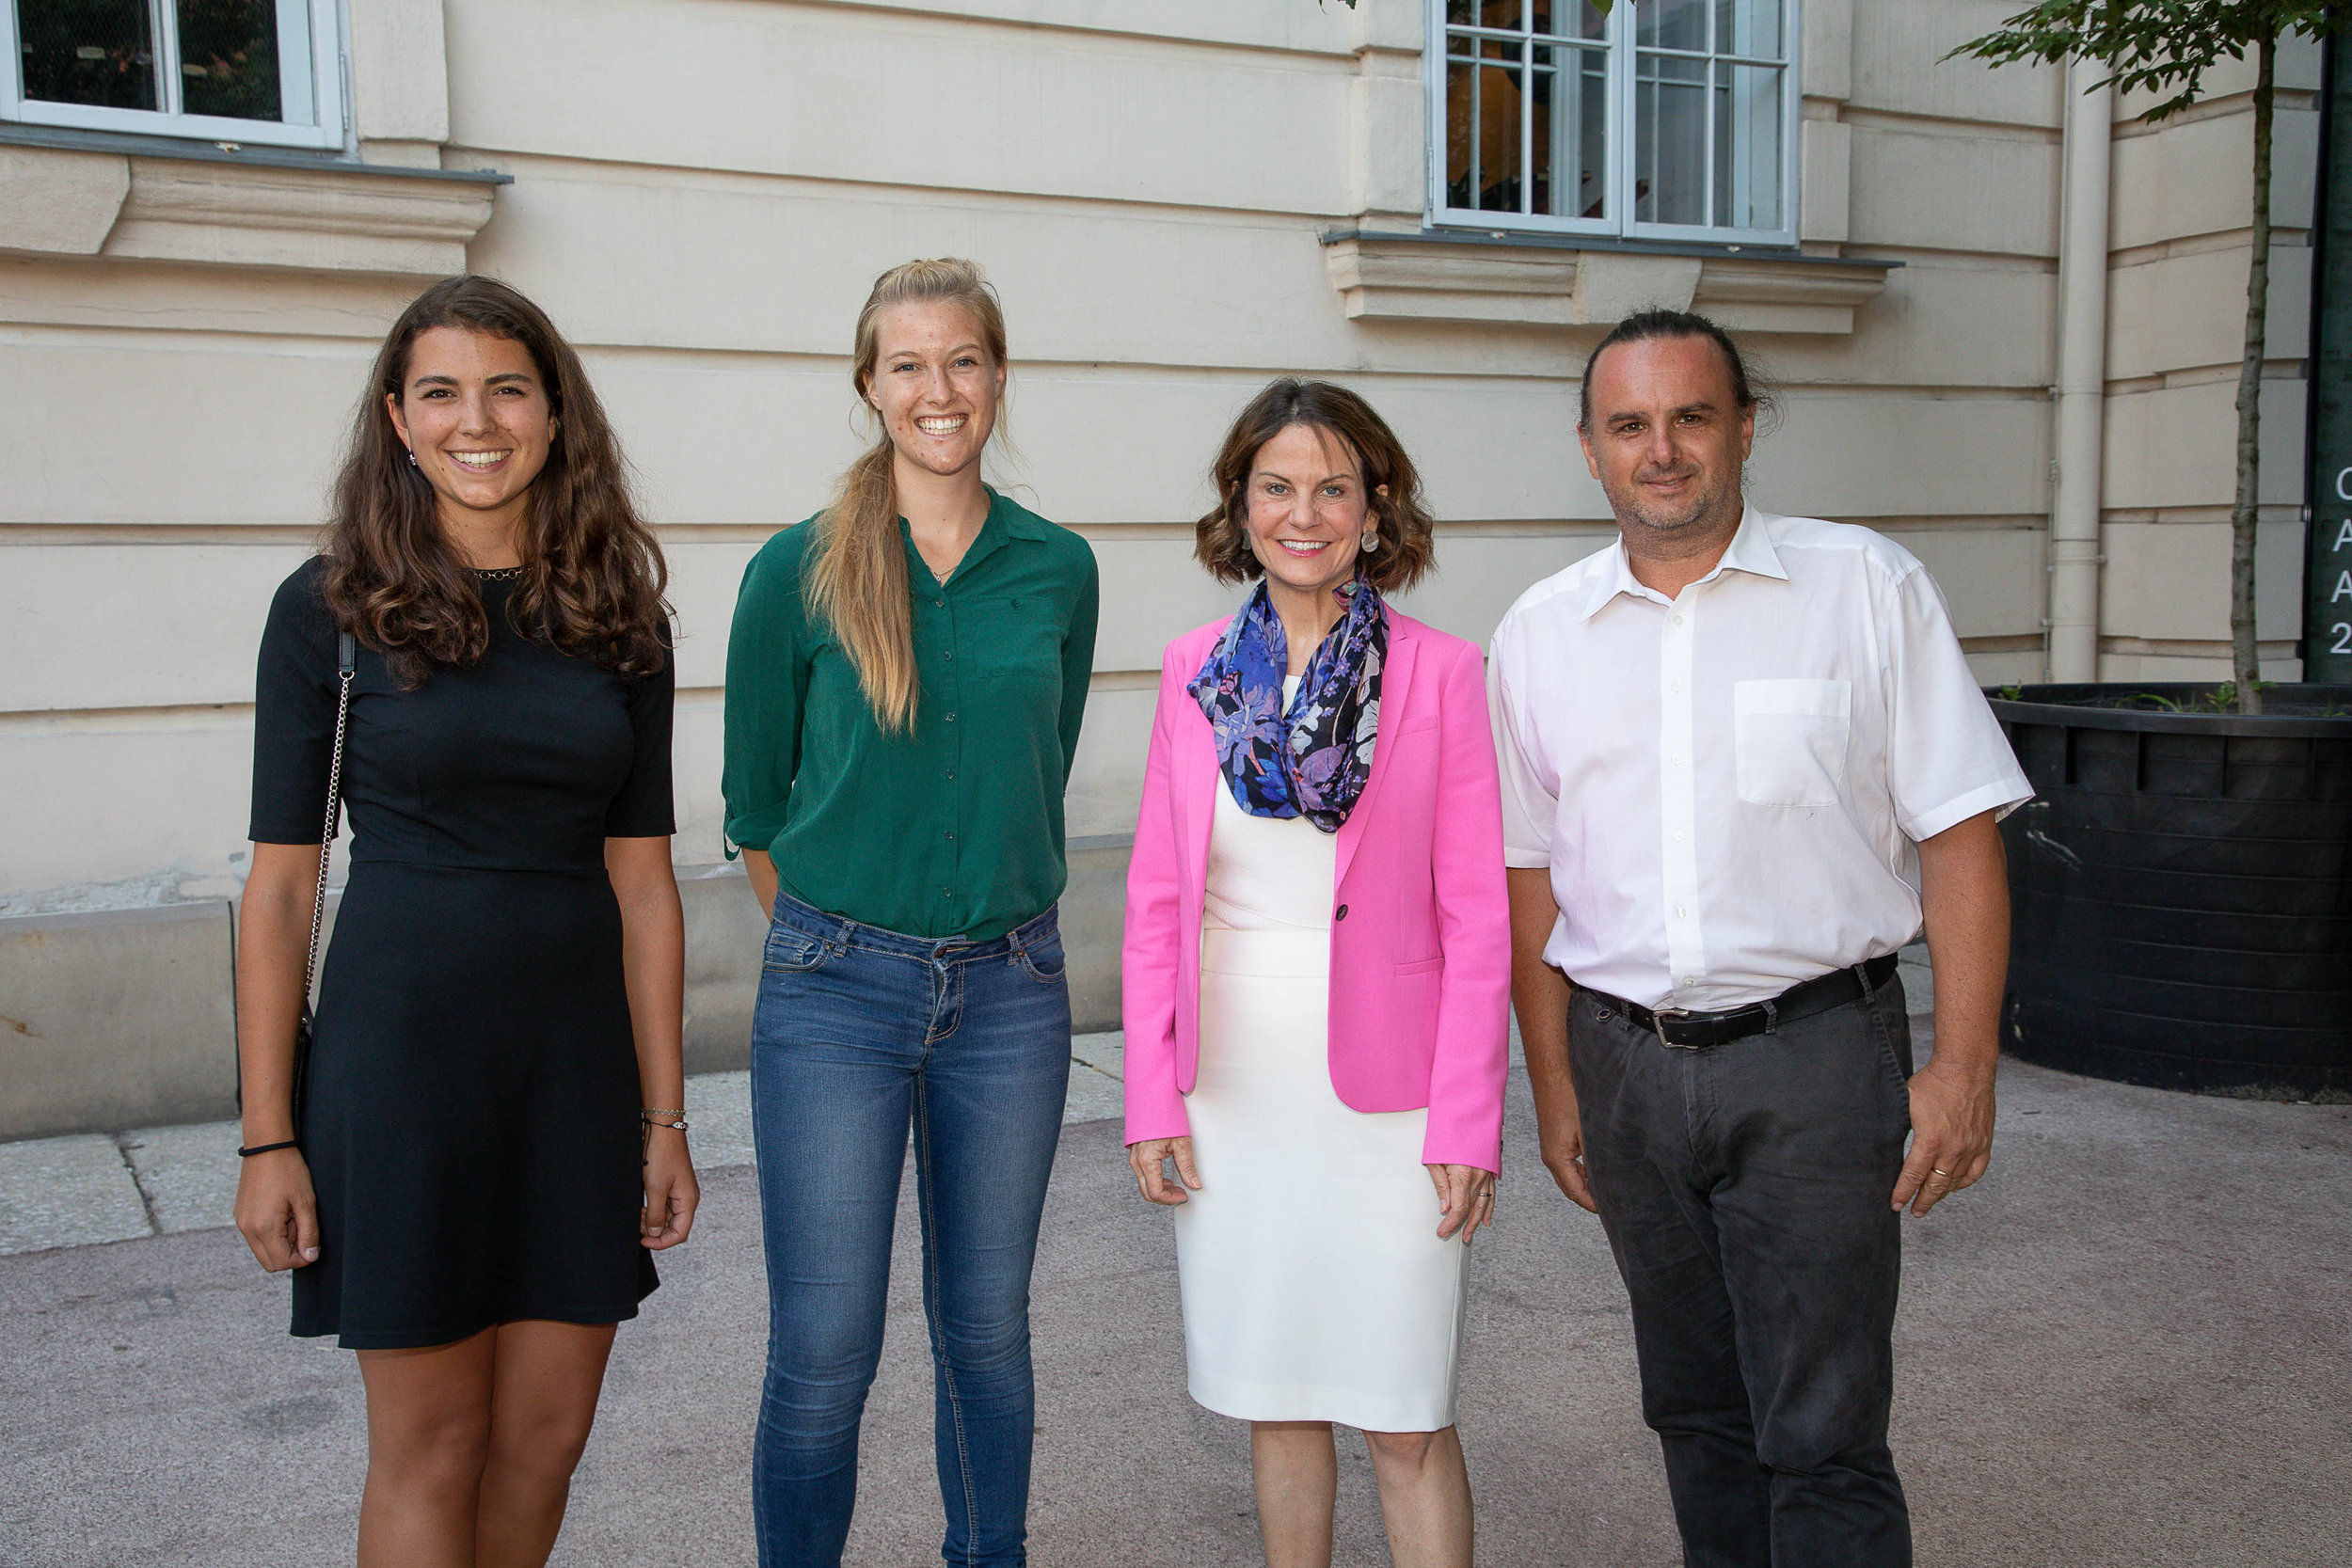 Marshall Plan Fellowship Recipients with Robin L. Dunningham, Minister-Counselor, Embassy of the United States in Austria